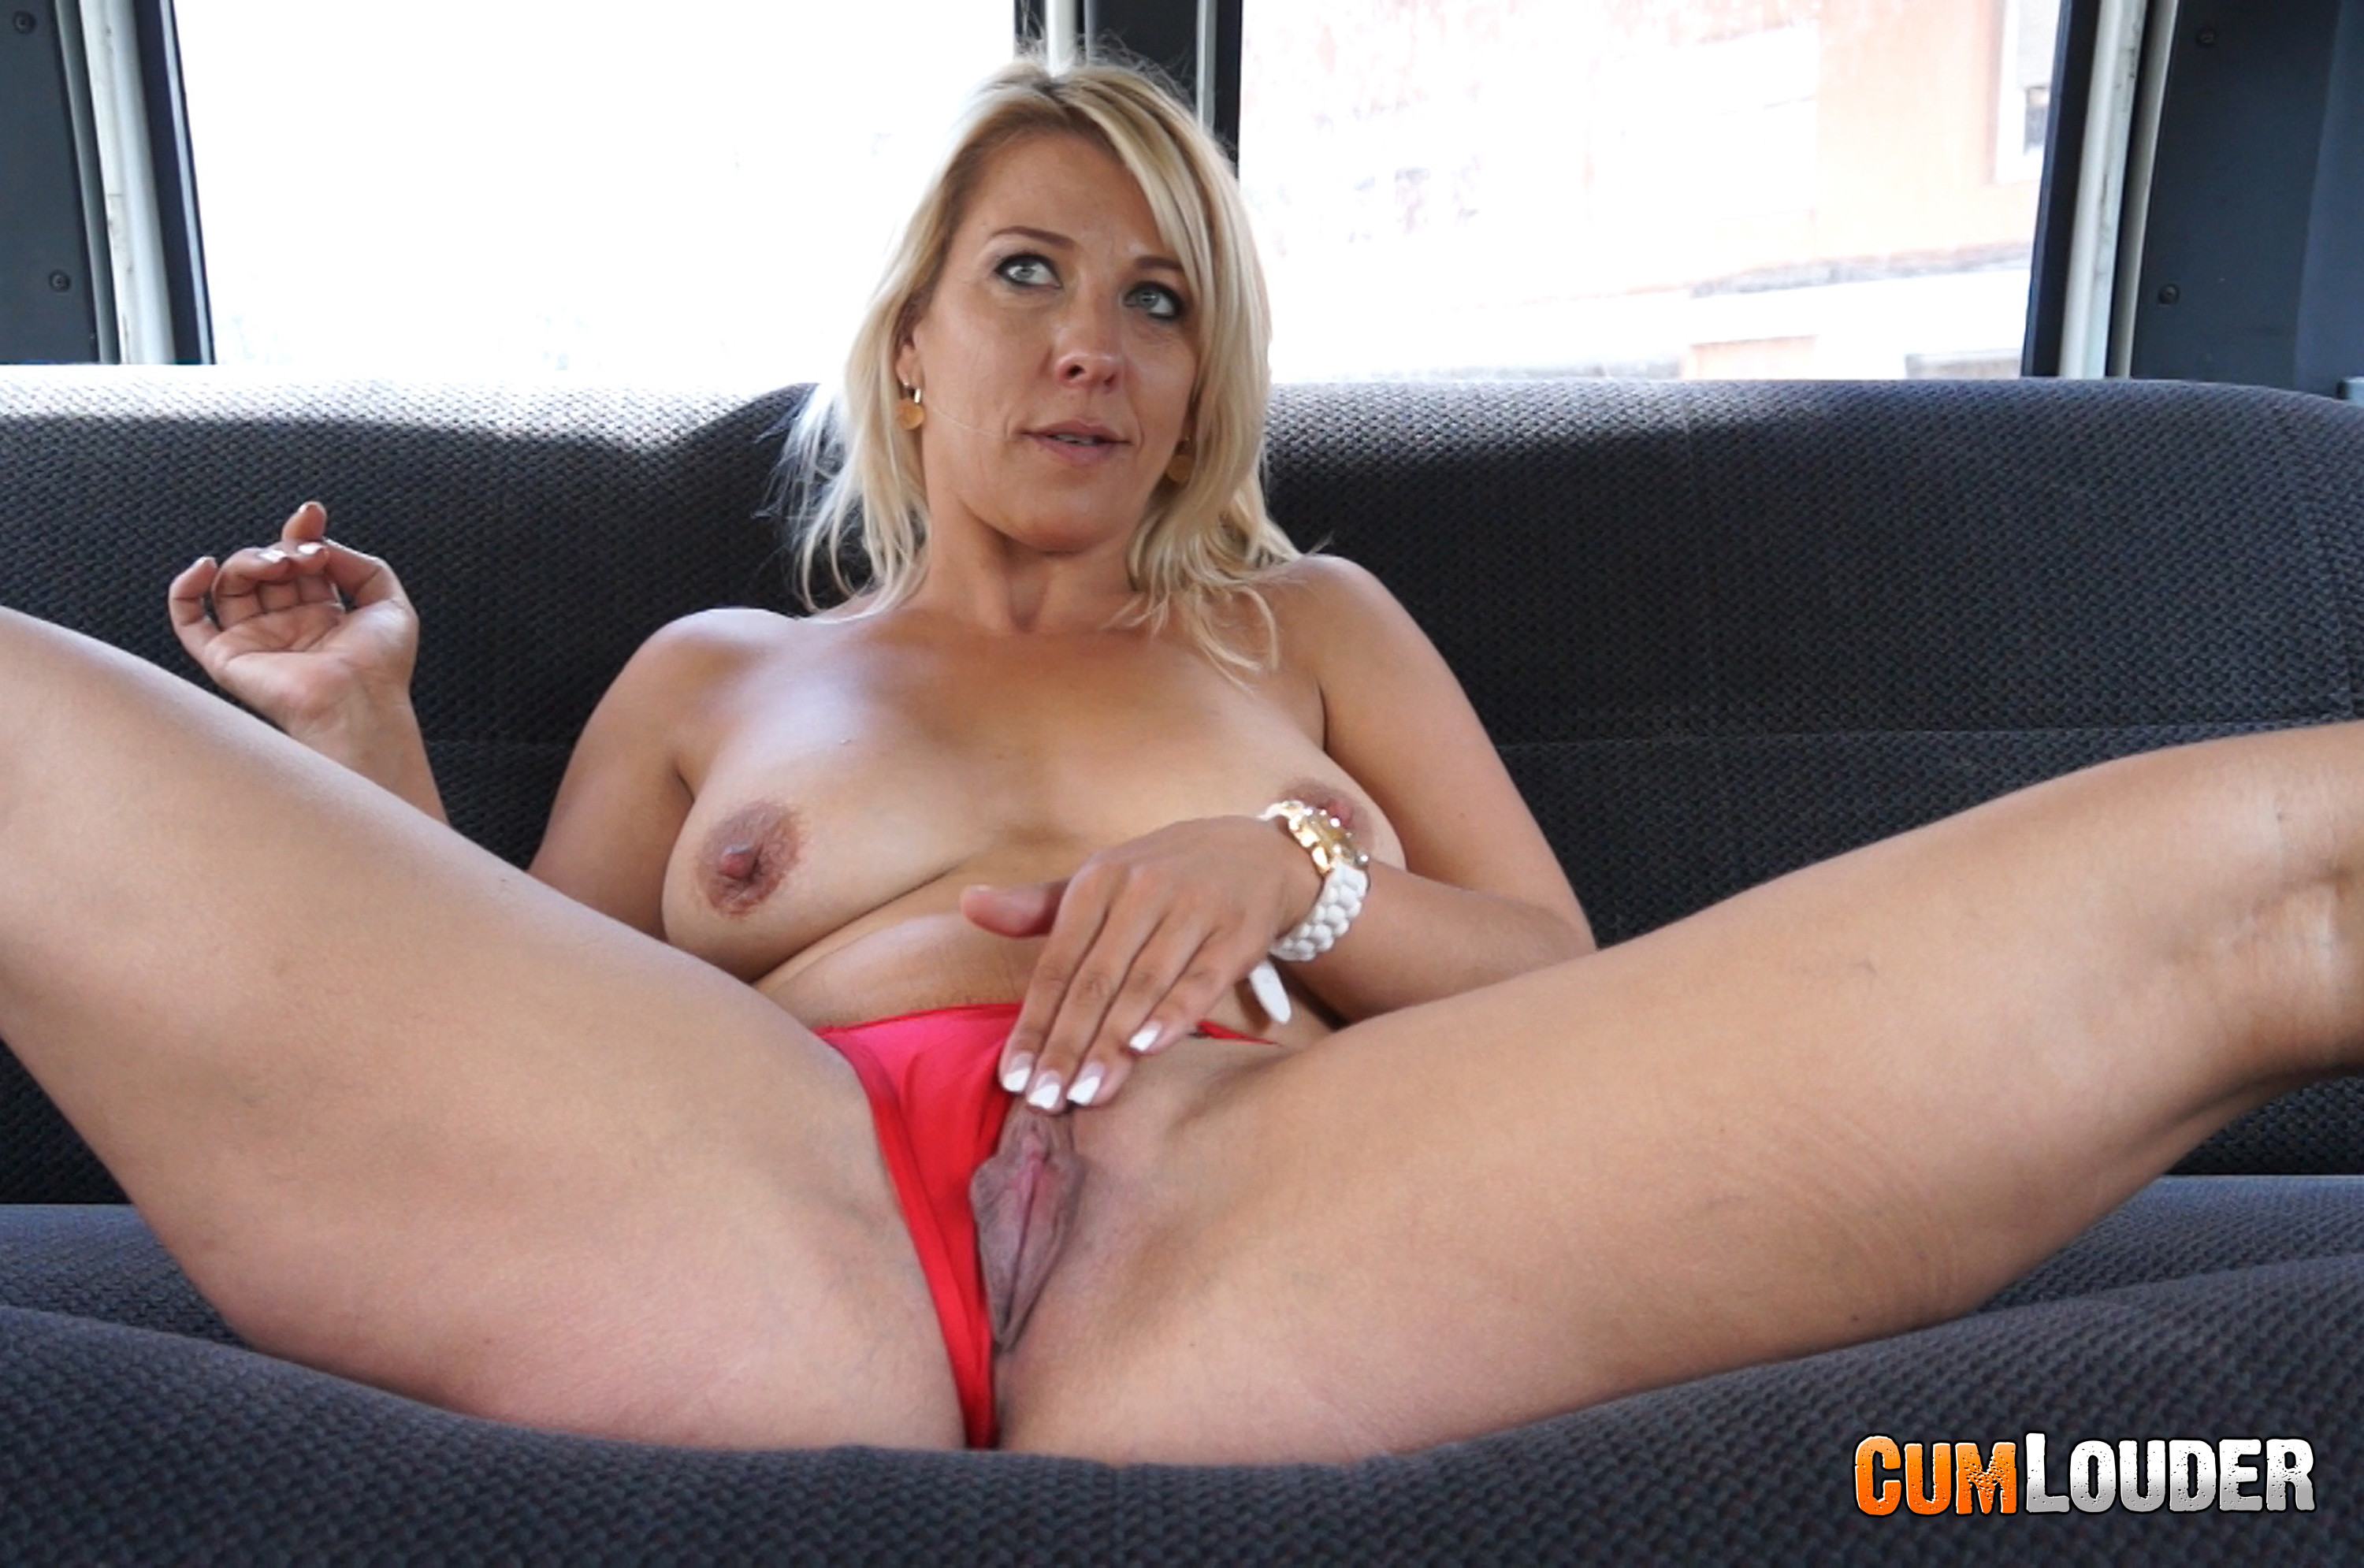 image Big tits milf horny for toy sex google plushcam to play asap Part 5